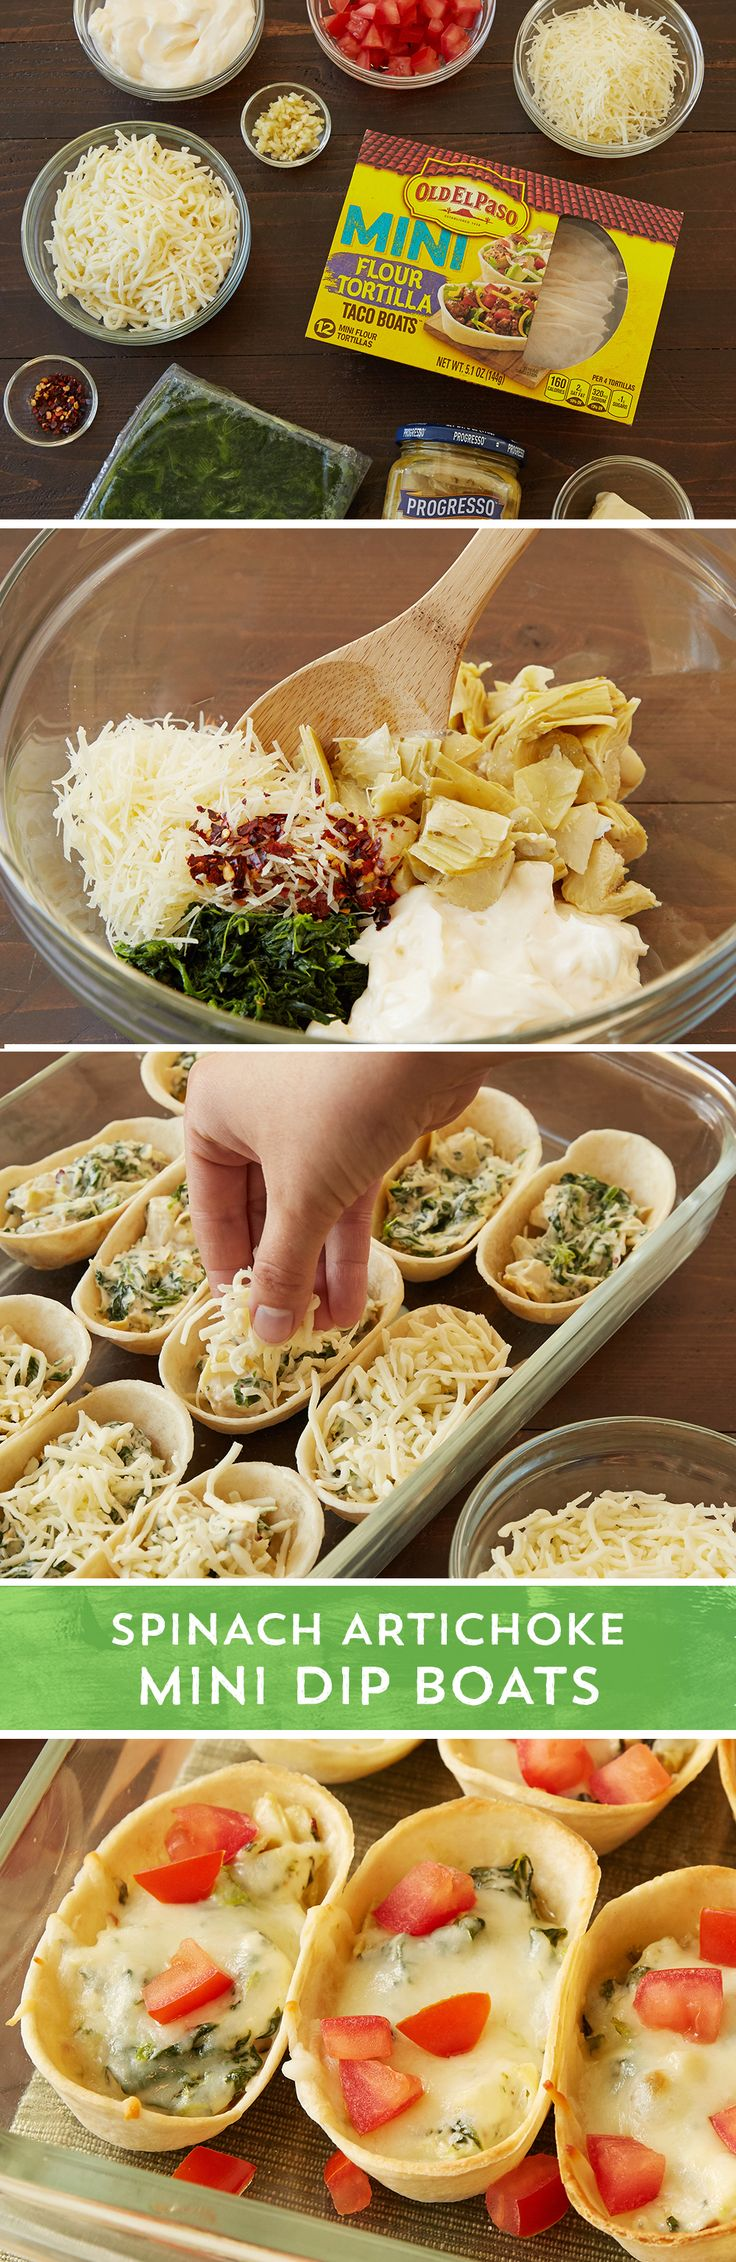 Classic spinach artichoke dip gets portable in these handheld mini taco boats. Don't worry about double dipping with individual spinach artichoke dips baked into delicious taco boats. Frozen chopped spinach, mayo, shredded Parmesan cheese, Progresso™ marinated artichoke hearts, and crushed red pepper flakes come together for the filling in this easy appetizer. Fill Old El Paso™ mini Taco Boats™, top with shredded mozzarella cheese, and bake for 18-22 minutes. Top with diced tomatoes for a…